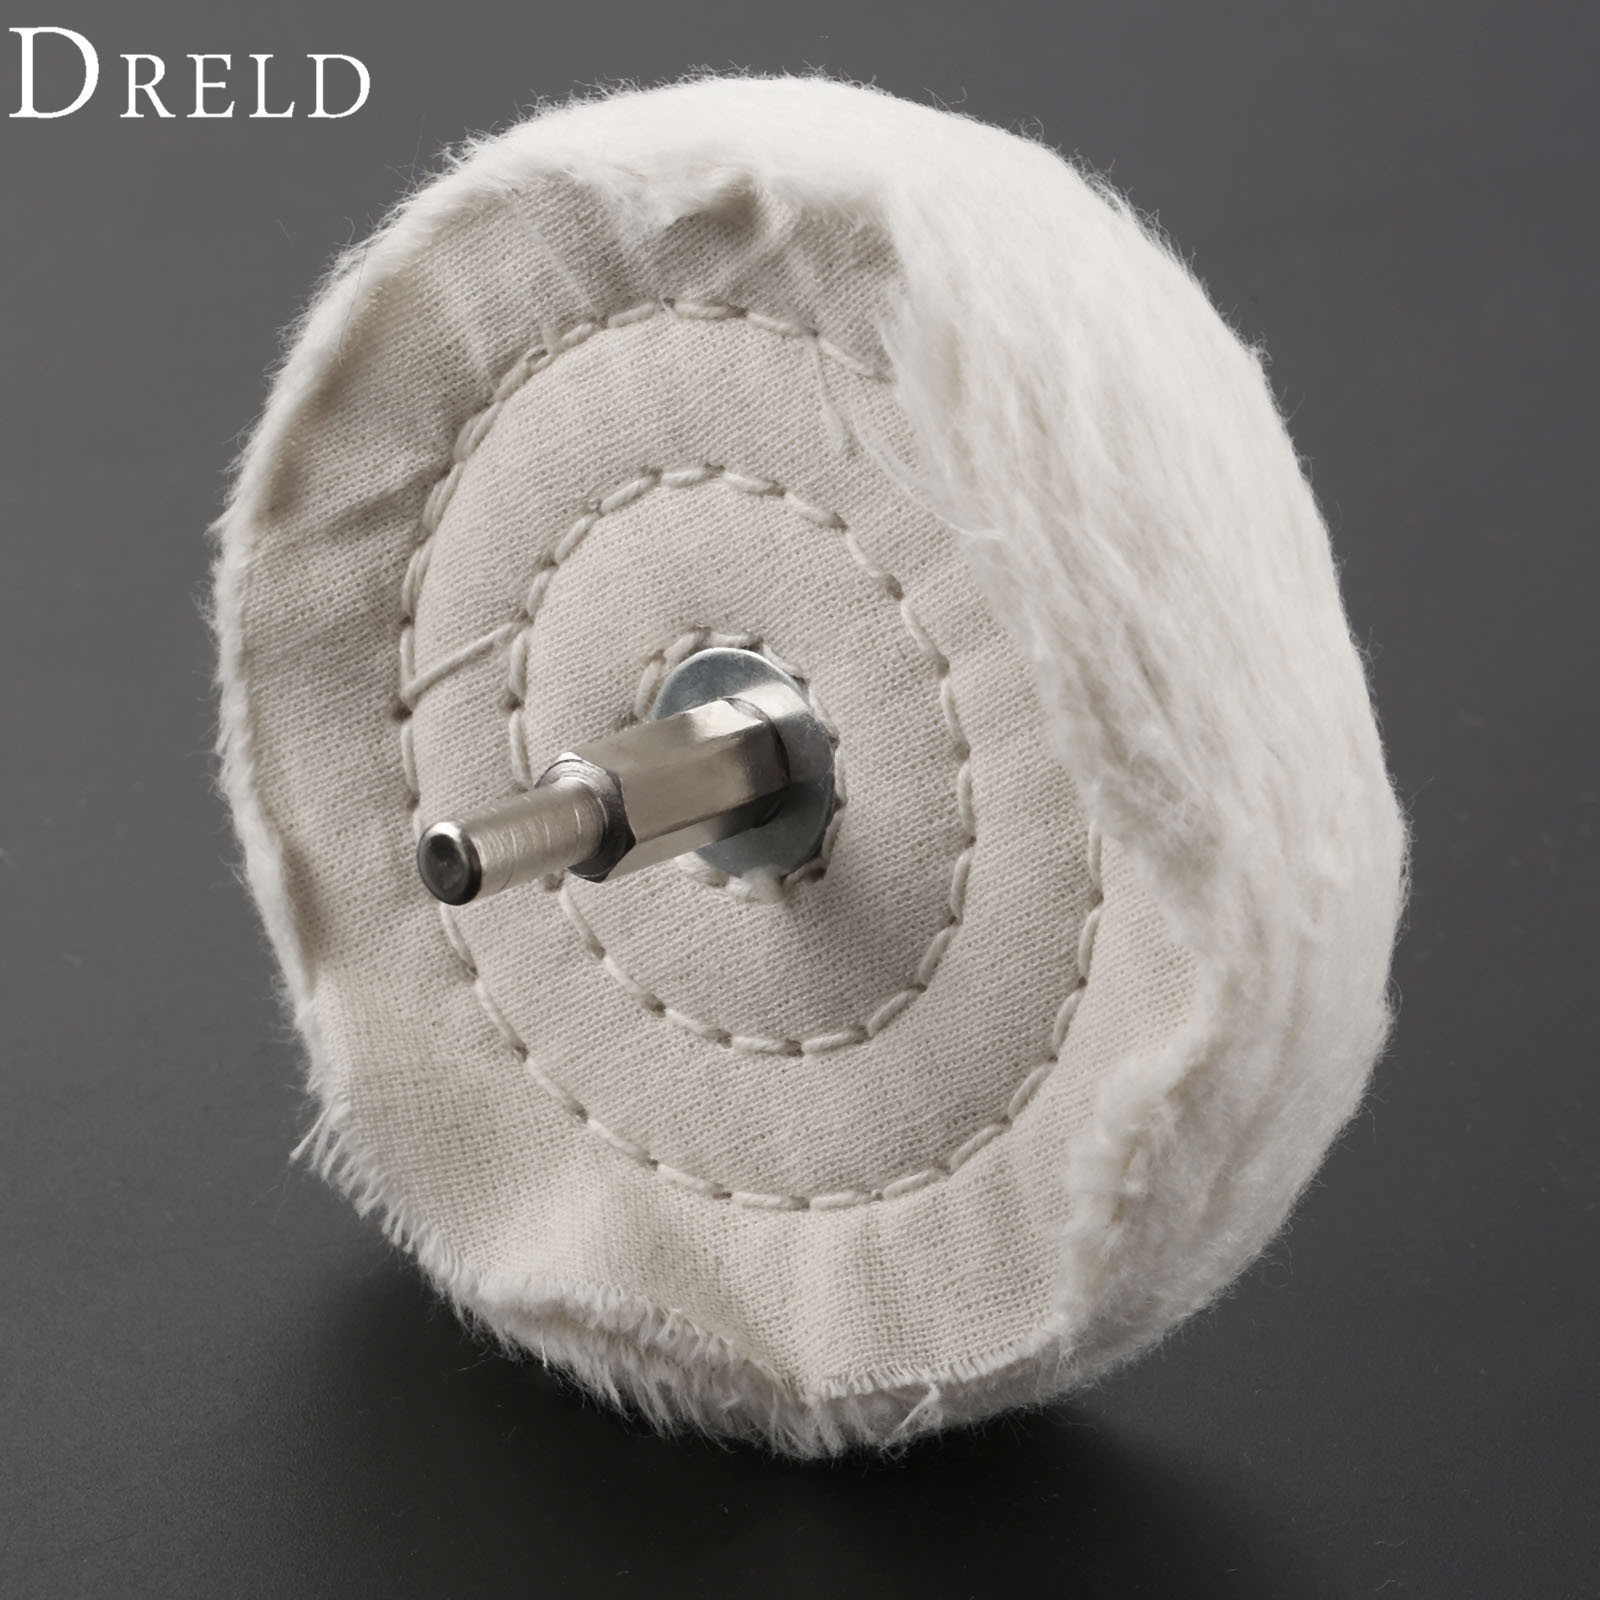 DRELD 1Pc Dremel Accessories 100mm /4